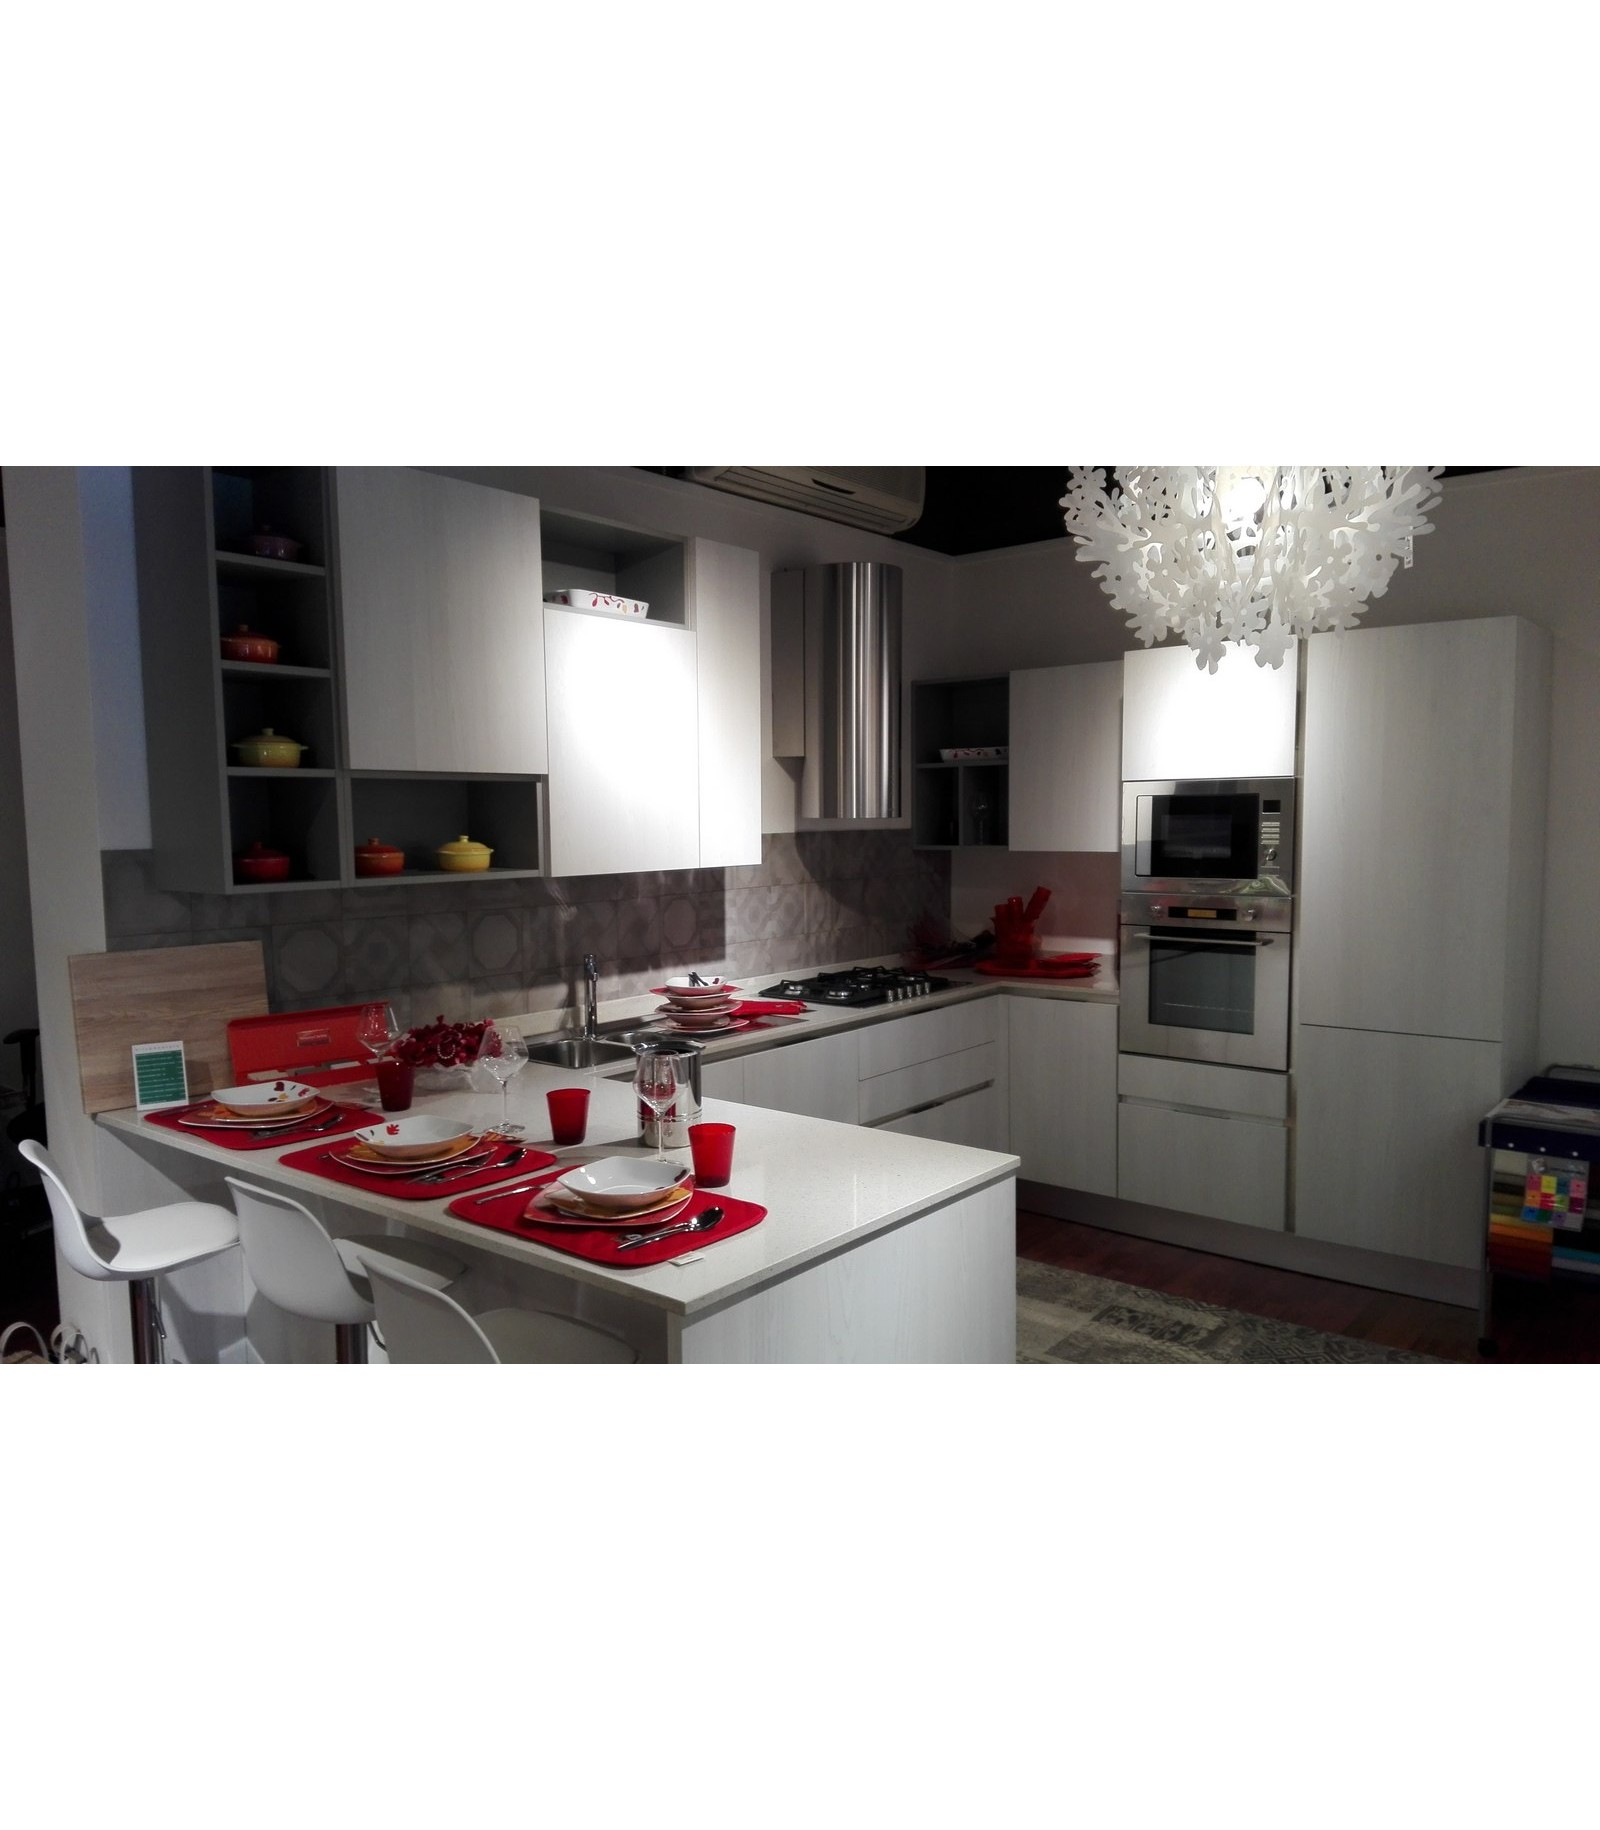 Cucine country outlet toscana